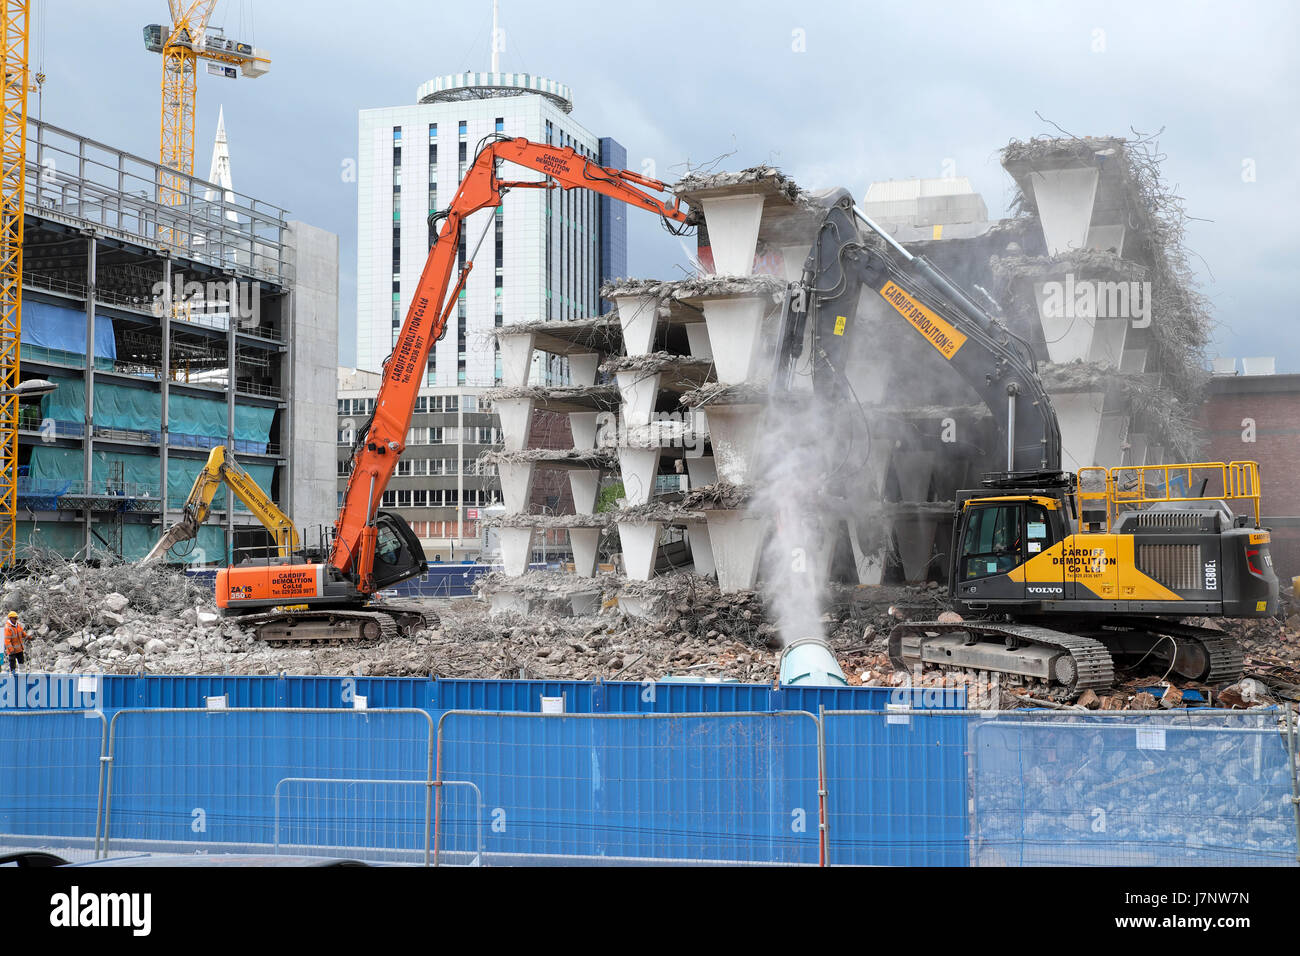 Demolition of derelict buildings on construction site at Wood Street carpark near station Central Square, Cardiff Stock Photo